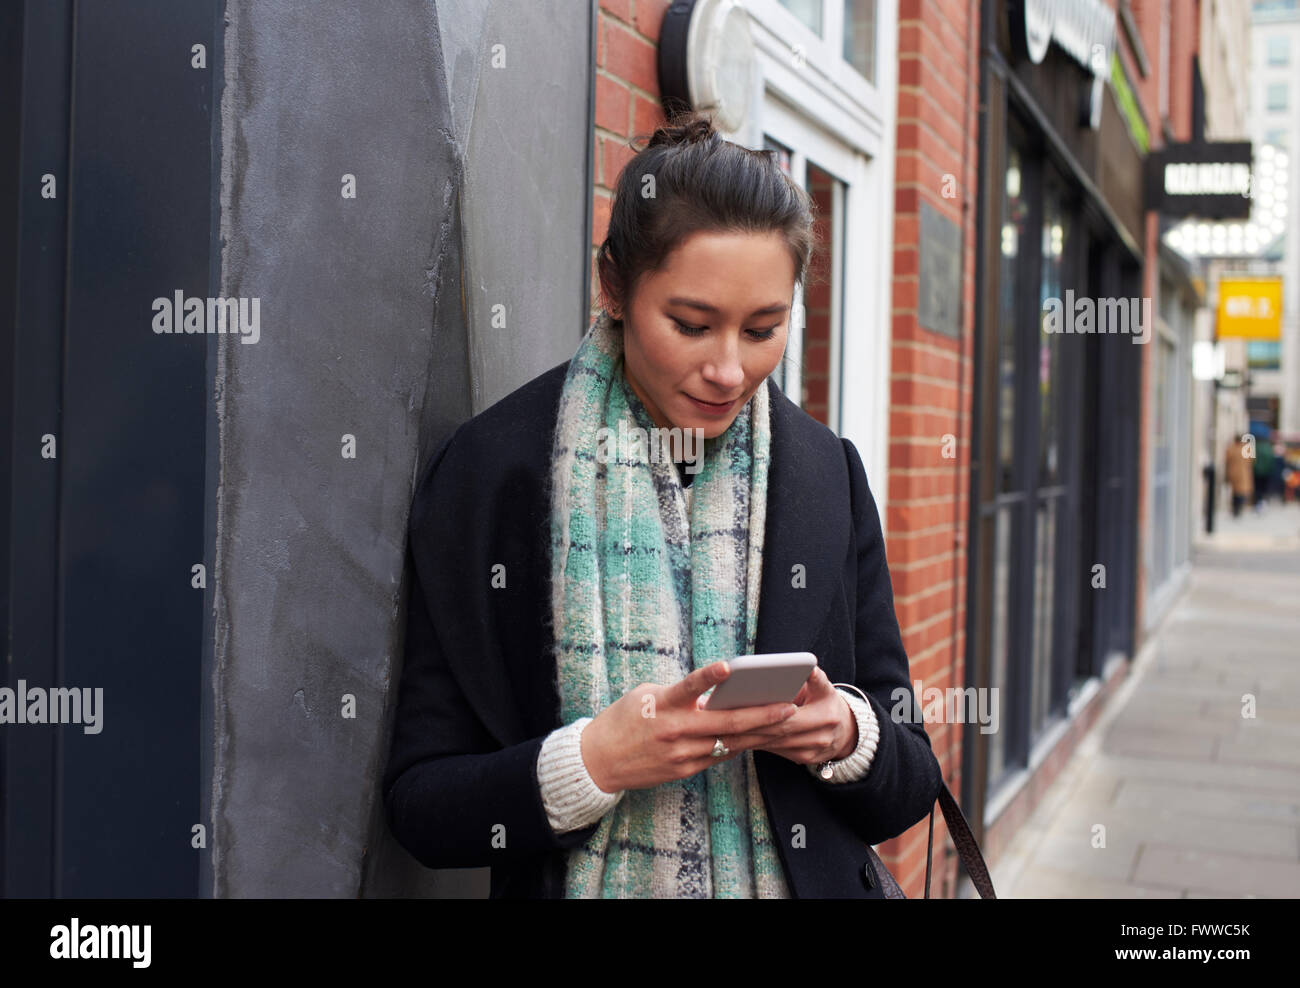 Young Woman Reading Text Messaging On City Street - Stock Image